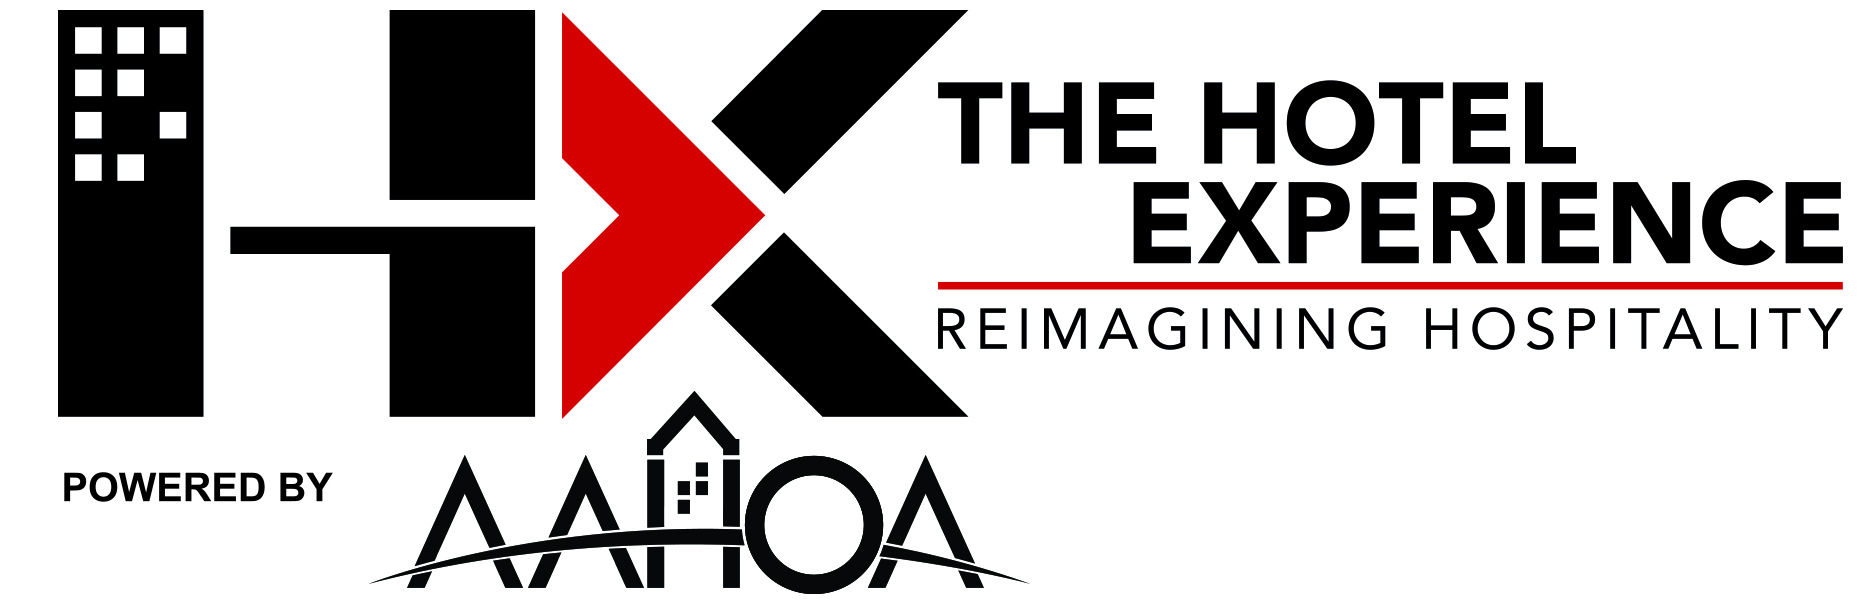 The Hotel Experience   Reimagining Hospitality